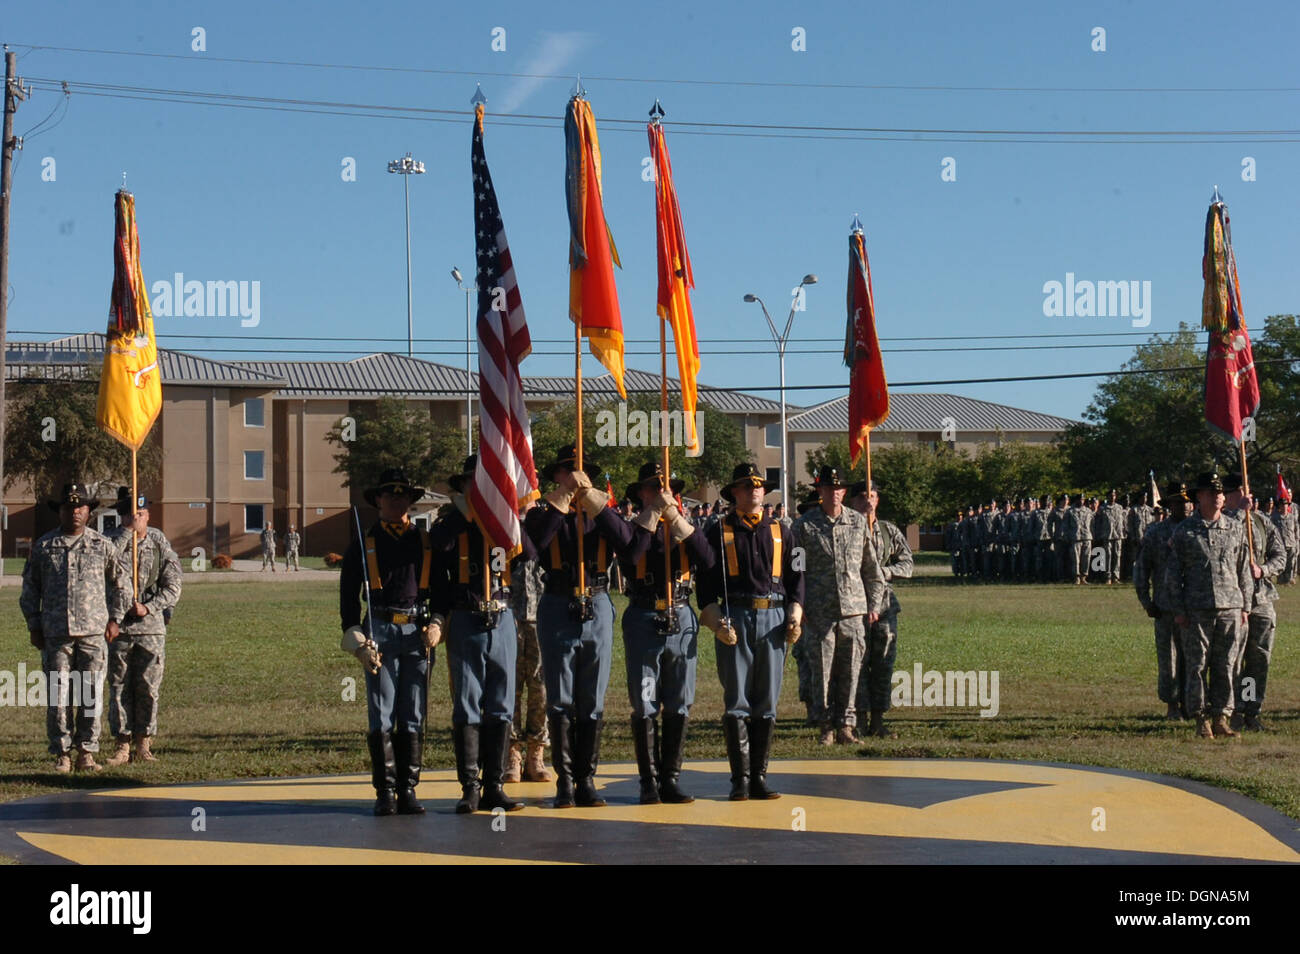 """The 1st Cavalry Division's color guard stand with the 4th Brigade """"Long Knife"""" Combat Team, 1st Cavalry Division's colors uncased for the final moments during the brigade's deactivation ceremony at Cooper Field, Fort Hood, Texas Oct. 17. The unit recently - Stock Image"""